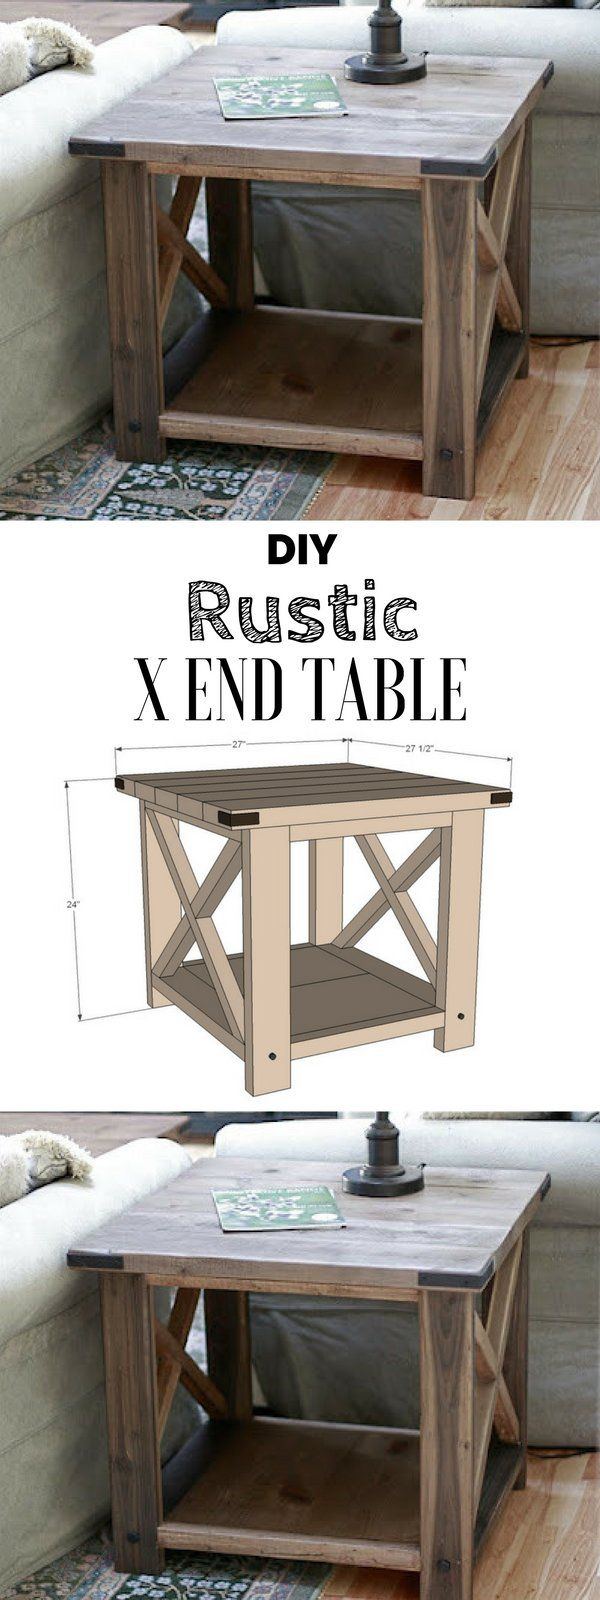 Diy rustic wood table - 15 Easy Diy Tables That You Can Build On A Budget Rustic End Tablesreclaimed Wood